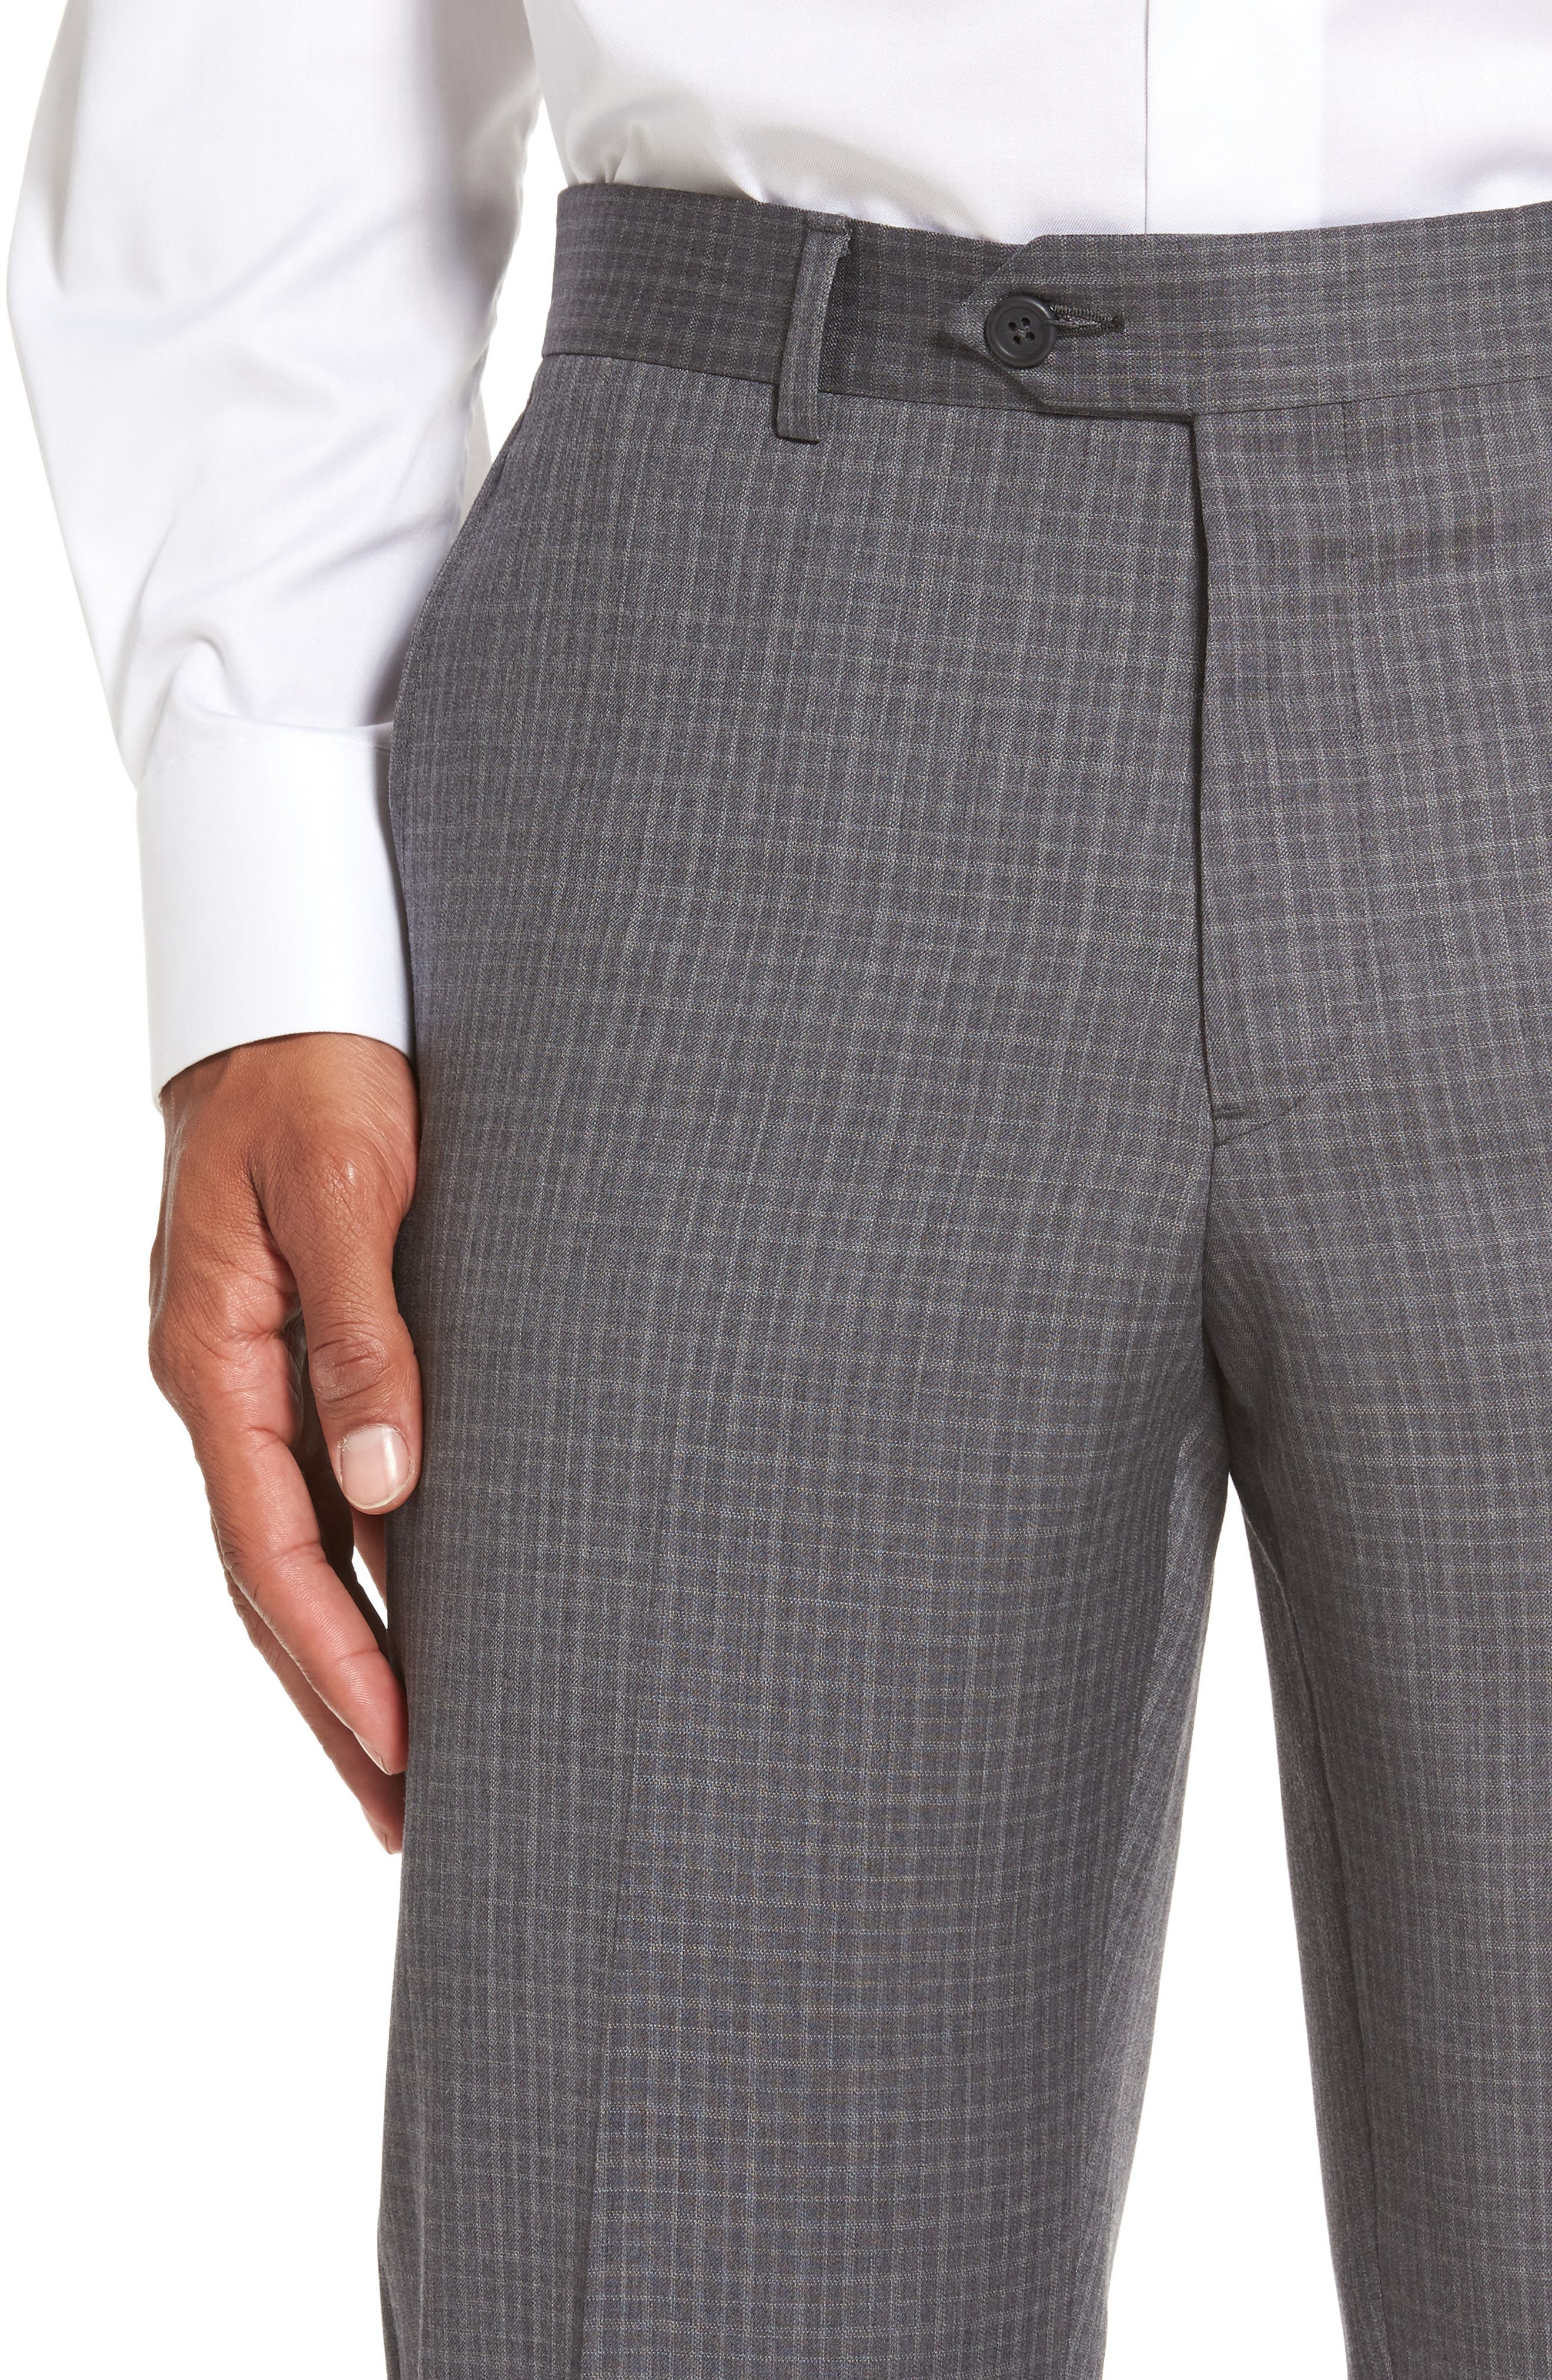 Flat Front Wool Trousers,                             Alternate thumbnail 5, color,                             099